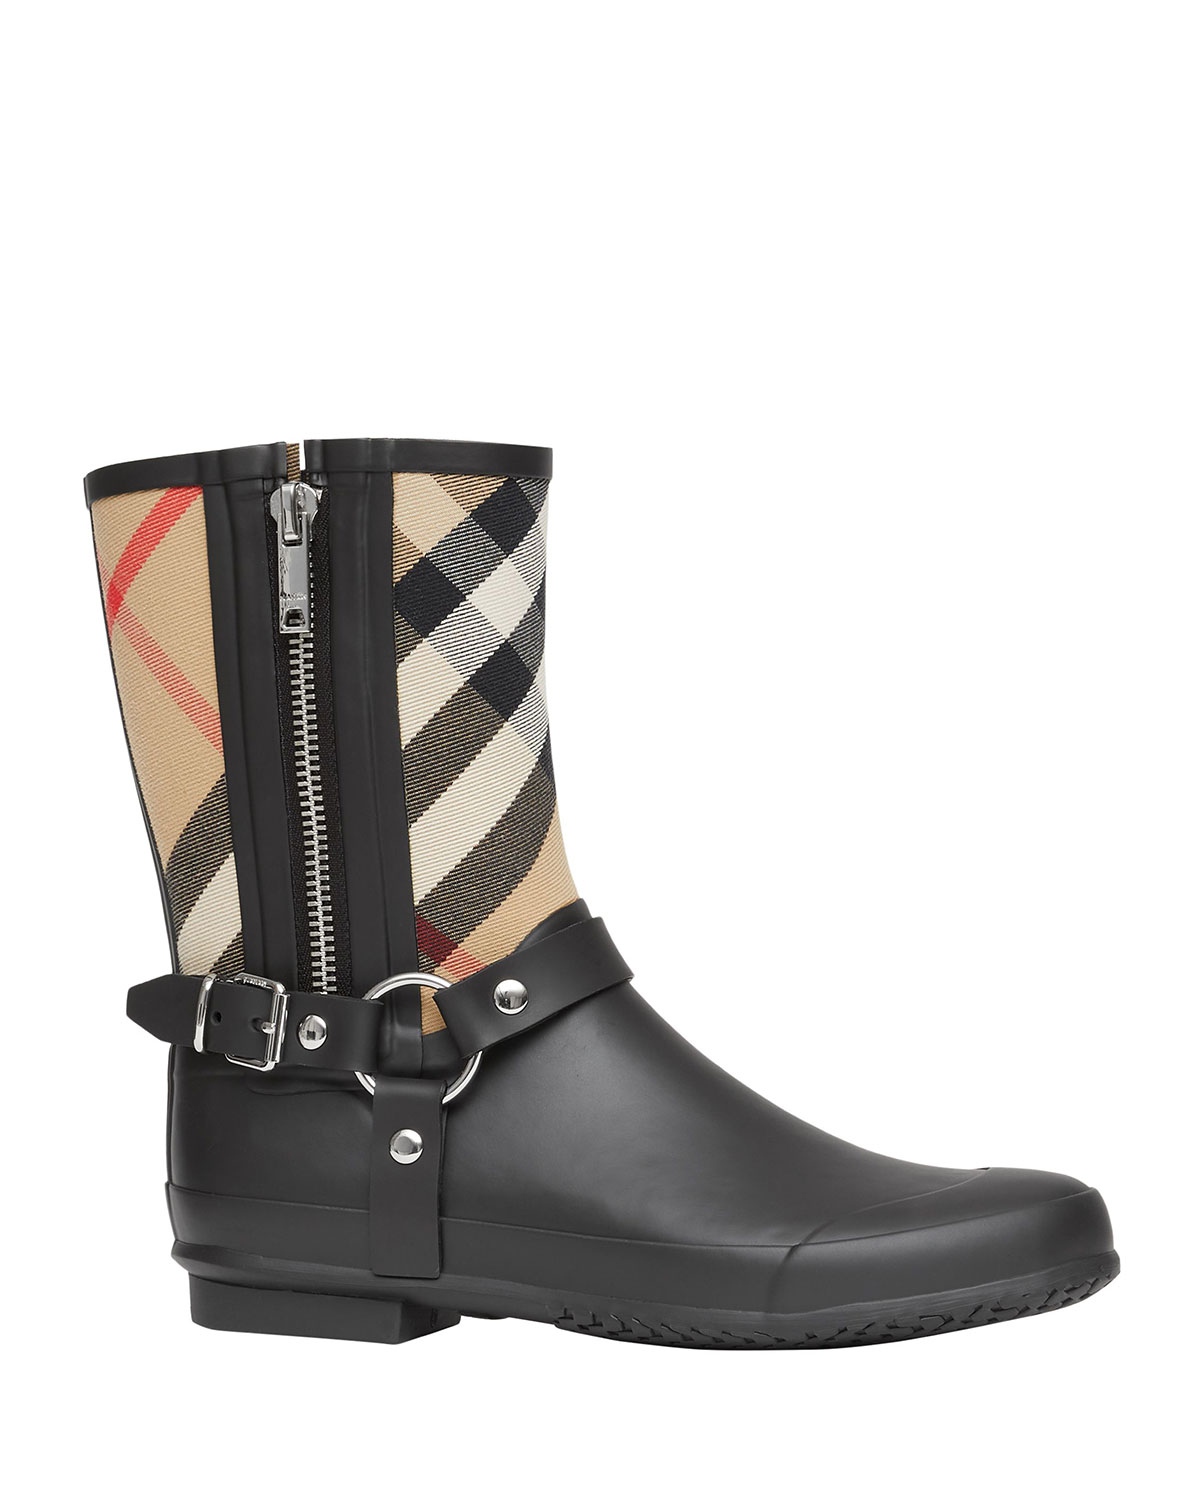 Burberry ZANE VINTAGE CHECK HARNESS RAIN BOOTS